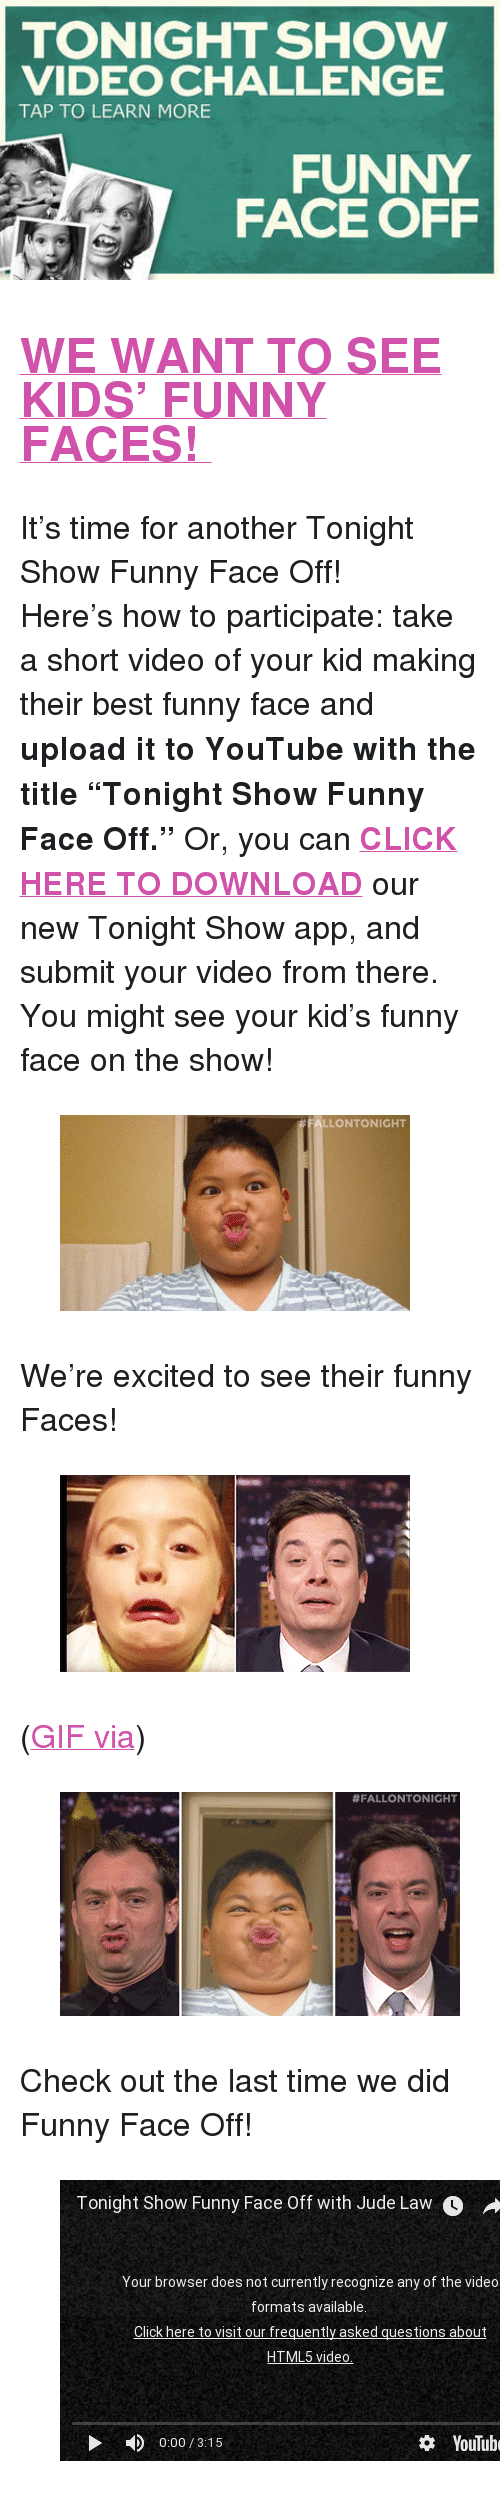 """funny face: TONIGHT SHOW  VIDEO CHALLENGE  TAP TO LEARN MORE  FUNNY  FACE OFF <h2><b><a href=""""http://www.nbc.com/the-tonight-show/blogs/3121"""" target=""""_blank"""">WE WANT TO SEE KIDS' FUNNY FACES!</a></b></h2><p>It's time for another Tonight Show Funny Face Off!</p><p>Here's how to participate: take a short video of your kid making their best funny face and <b>upload it to YouTube with the title """"Tonight Show Funny Face Off.""""</b> Or, you can <b><a href=""""http://www.nbc.com/the-tonight-show/blogs/1086"""" target=""""_blank"""">CLICK HERE TO DOWNLOAD</a></b> our new Tonight Show app, and submit your video from there. You might see your kid's funny face on the show!</p><figure data-orig-width=""""350"""" data-orig-height=""""196""""><img src=""""https://78.media.tumblr.com/fea73ad57acb250b718b5f3d15da086d/tumblr_inline_nlitsstbOT1qgt12i.gif"""" alt=""""image"""" data-orig-width=""""350"""" data-orig-height=""""196""""/></figure><p>We're excited to see their funny Faces!</p><figure data-orig-height=""""197"""" data-orig-width=""""350""""><img src=""""https://78.media.tumblr.com/96d01537f1b13eda8008628d40742e87/tumblr_inline_nlrwj2et9v1qgt12i.gif"""" data-orig-height=""""197"""" data-orig-width=""""350""""/></figure><p>(<a href=""""http://jfallonlove.tumblr.com/post/80750891924"""" target=""""_blank"""">GIF via</a>)</p><figure data-orig-width=""""400"""" data-orig-height=""""224""""><img src=""""https://78.media.tumblr.com/daadc7d7137e90d2bdc7b3f60b7f0230/tumblr_inline_nlitt0yZiD1qgt12i.gif"""" alt=""""image"""" data-orig-width=""""400"""" data-orig-height=""""224""""/></figure><p>Check out the last time we did Funny Face Off!</p>  <figure class=""""tmblr-embed"""" data-provider=""""youtube"""" data-orig-width=""""540"""" data-orig-height=""""304"""" data-url=""""https%3A%2F%2Fwww.youtube.com%2Fwatch%3Fv%3DFlqMnDUtfOQ""""><iframe width=""""500"""" height=""""281"""" id=""""youtube_iframe"""" src=""""https://www.youtube.com/embed/FlqMnDUtfOQ?feature=oembed&amp;enablejsapi=1&amp;origin=https://safe.txmblr.com&amp;wmode=opaque"""" frameborder=""""0"""" allowfullscreen=""""""""></iframe></figure>"""